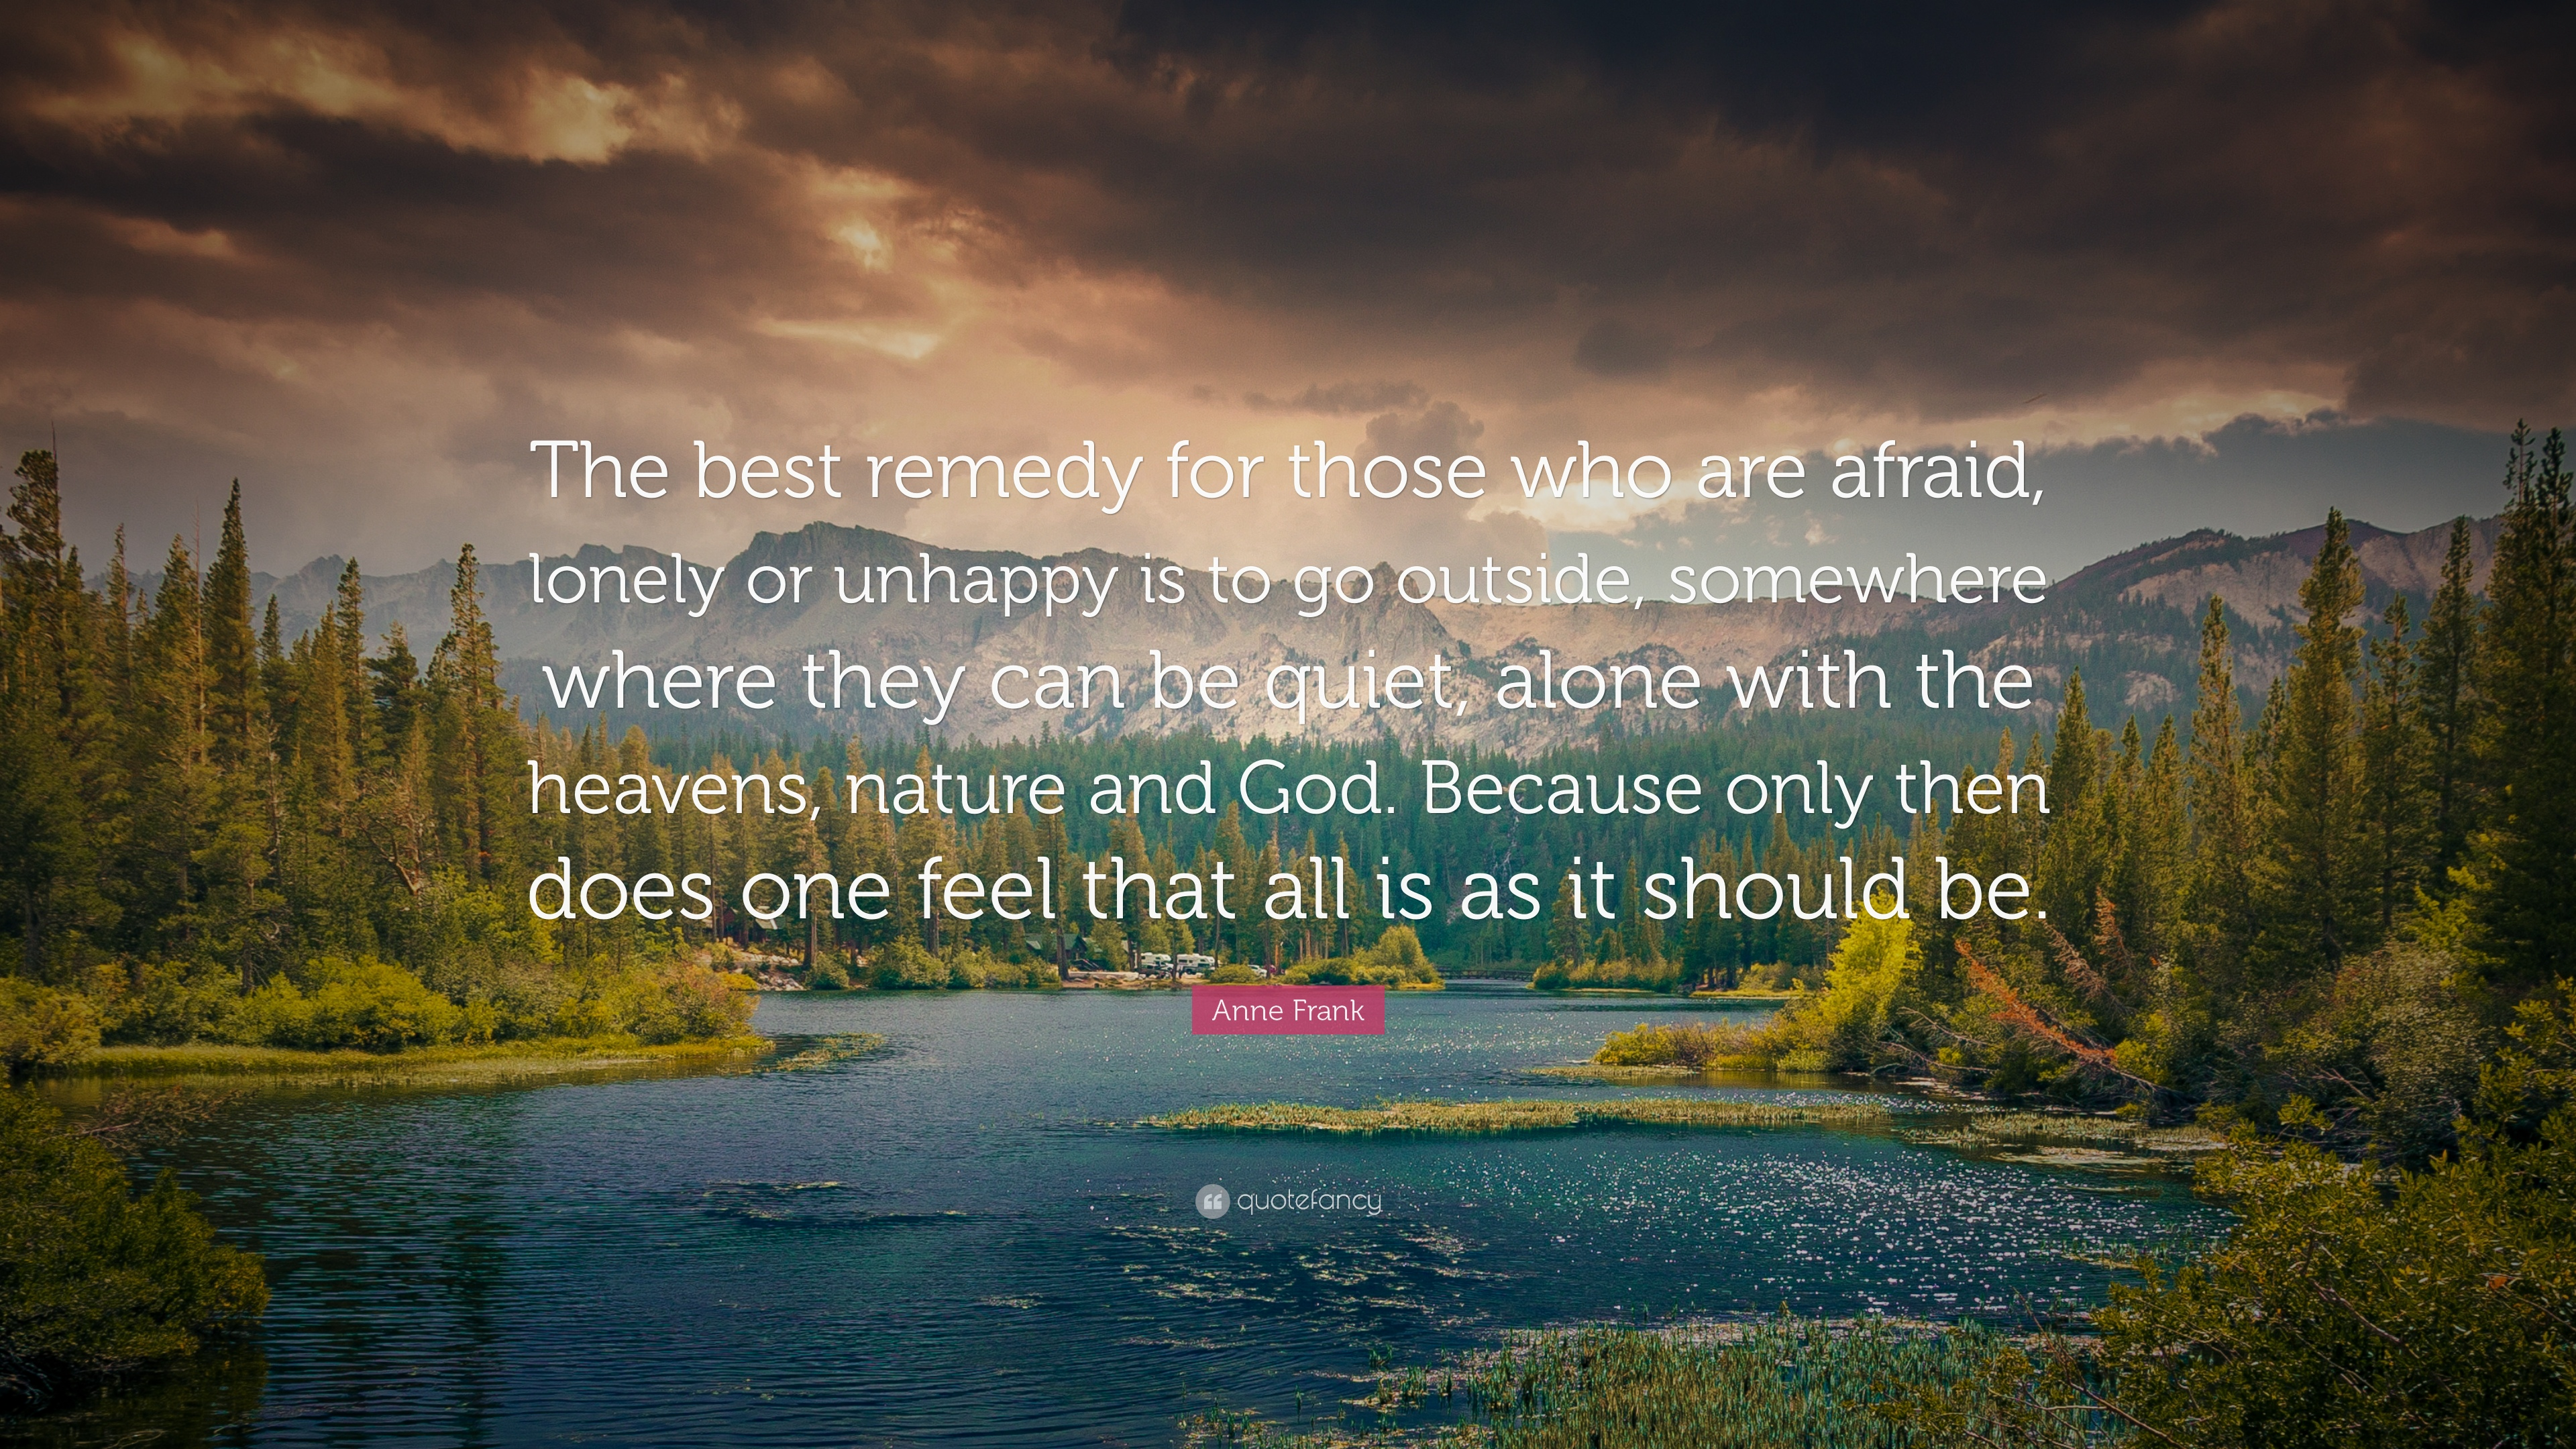 Lonely Quotes The Best Remedy For Those Who Are Afraid Or Unhappy